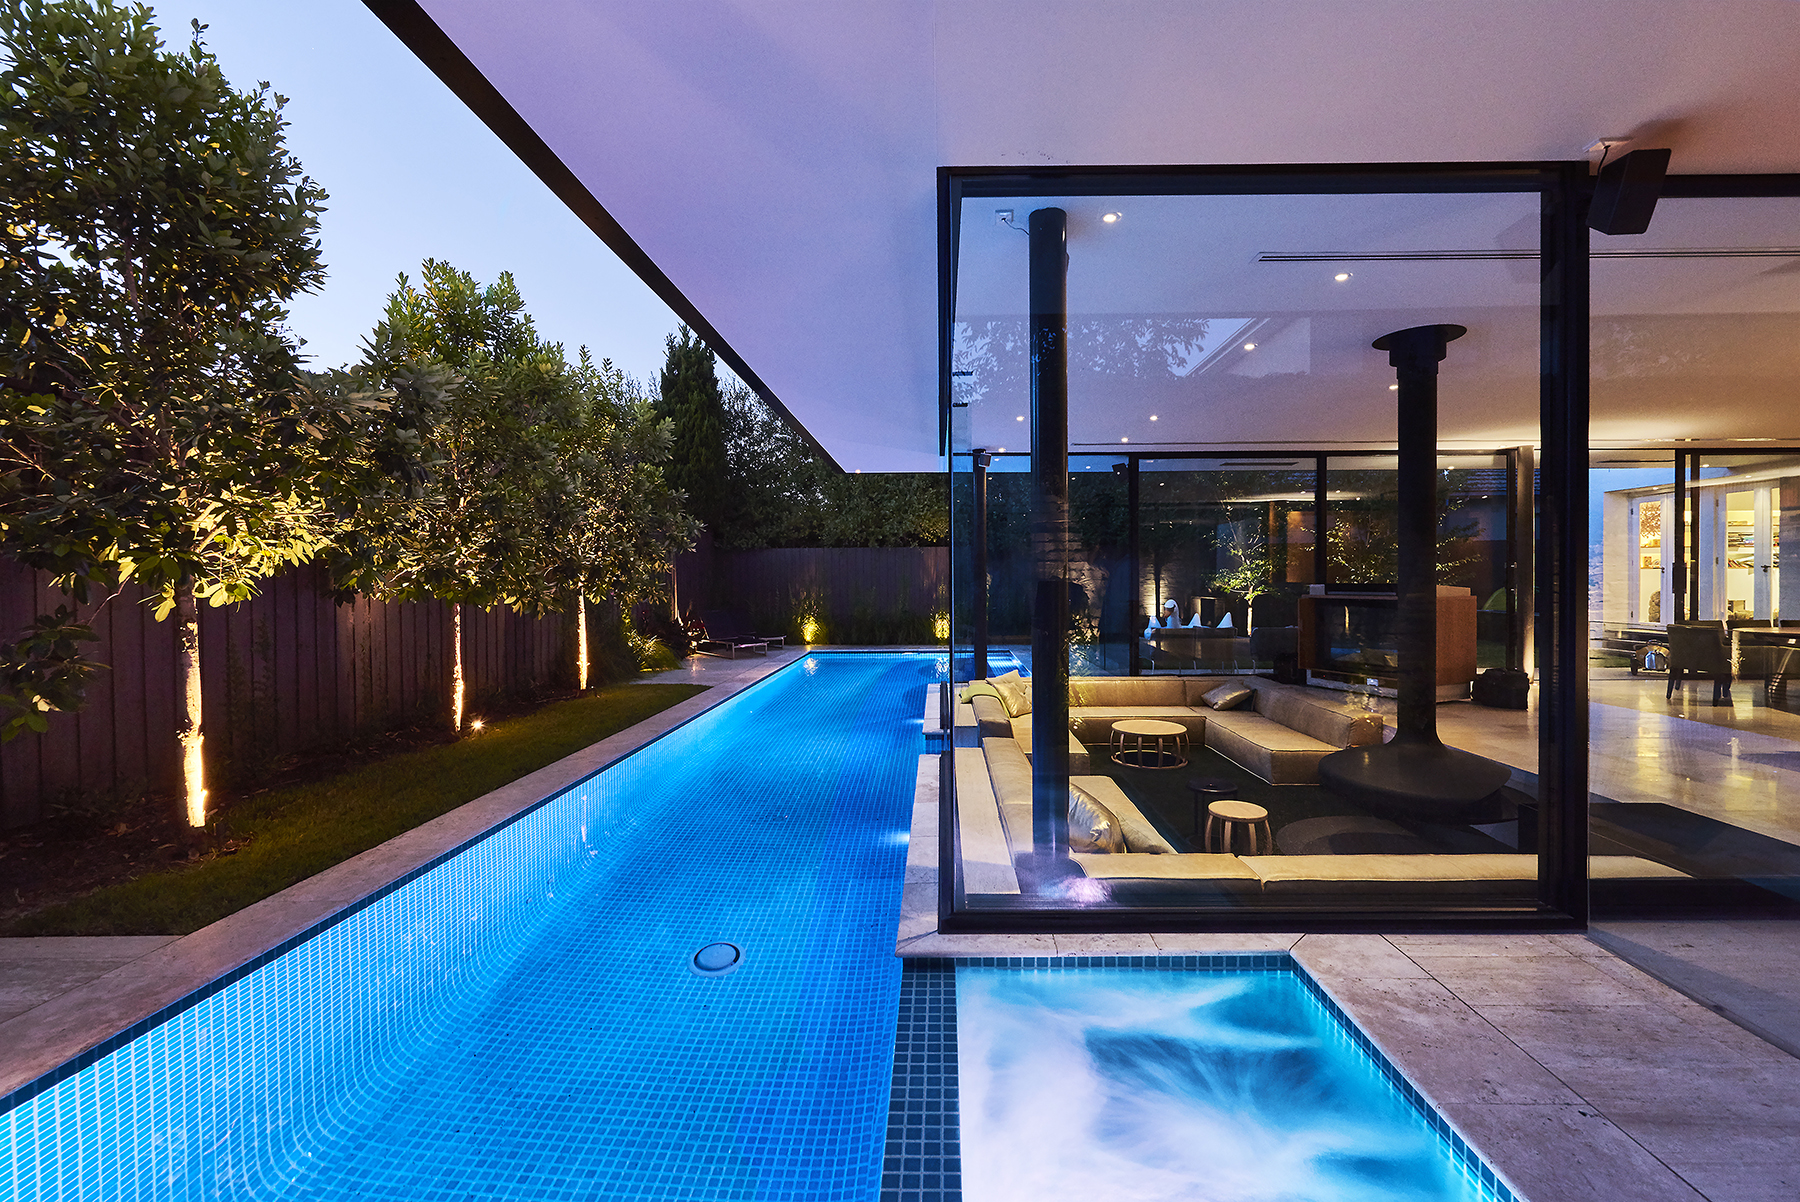 Oftb melbourne landscaping architecture pool design for Construction pool house piscine